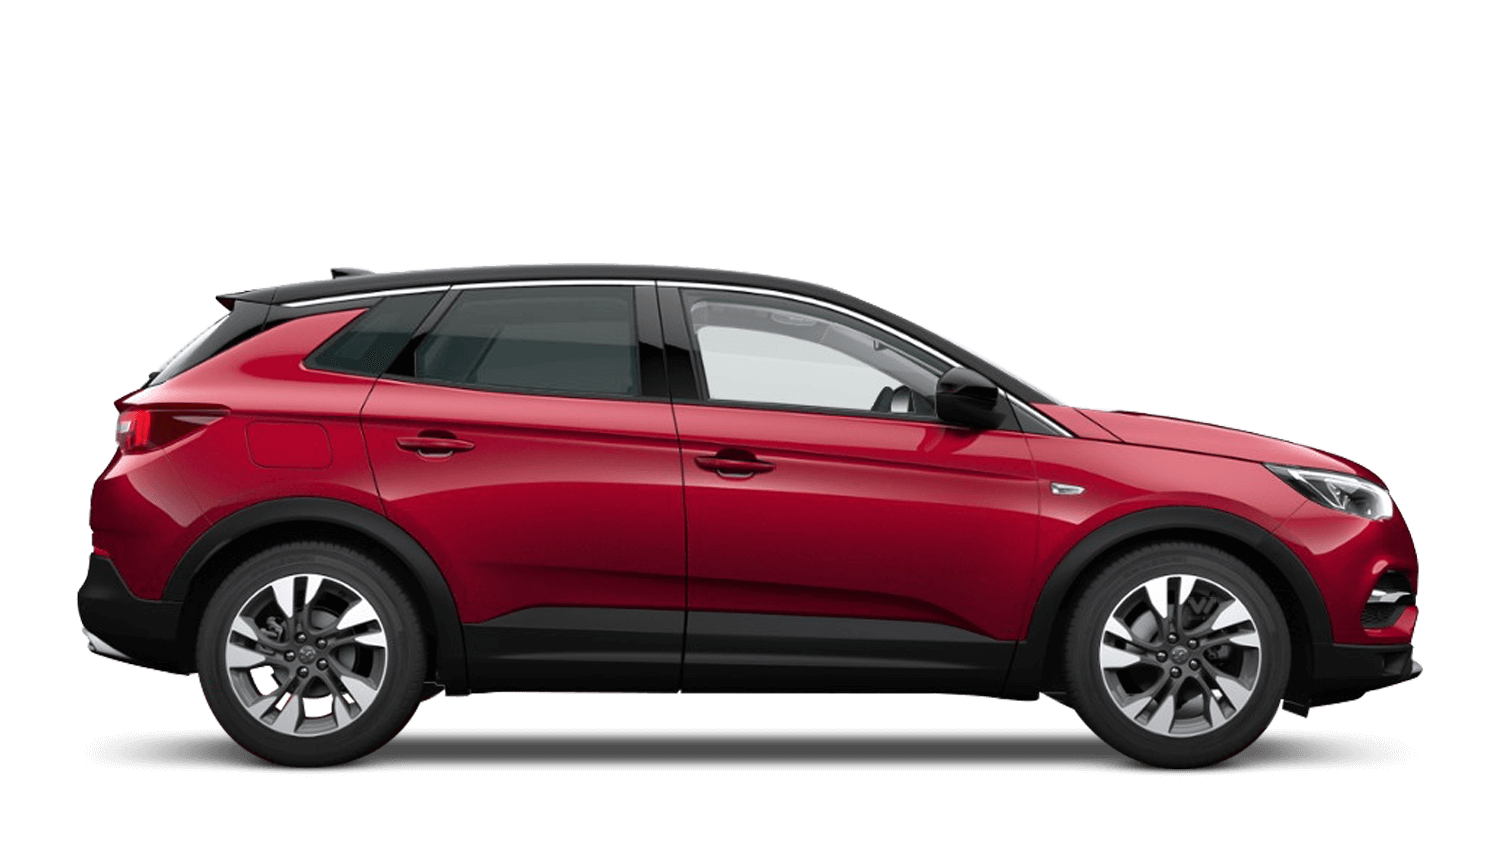 Dark Ruby Red (Premium Metallic) Vauxhall Grandland X